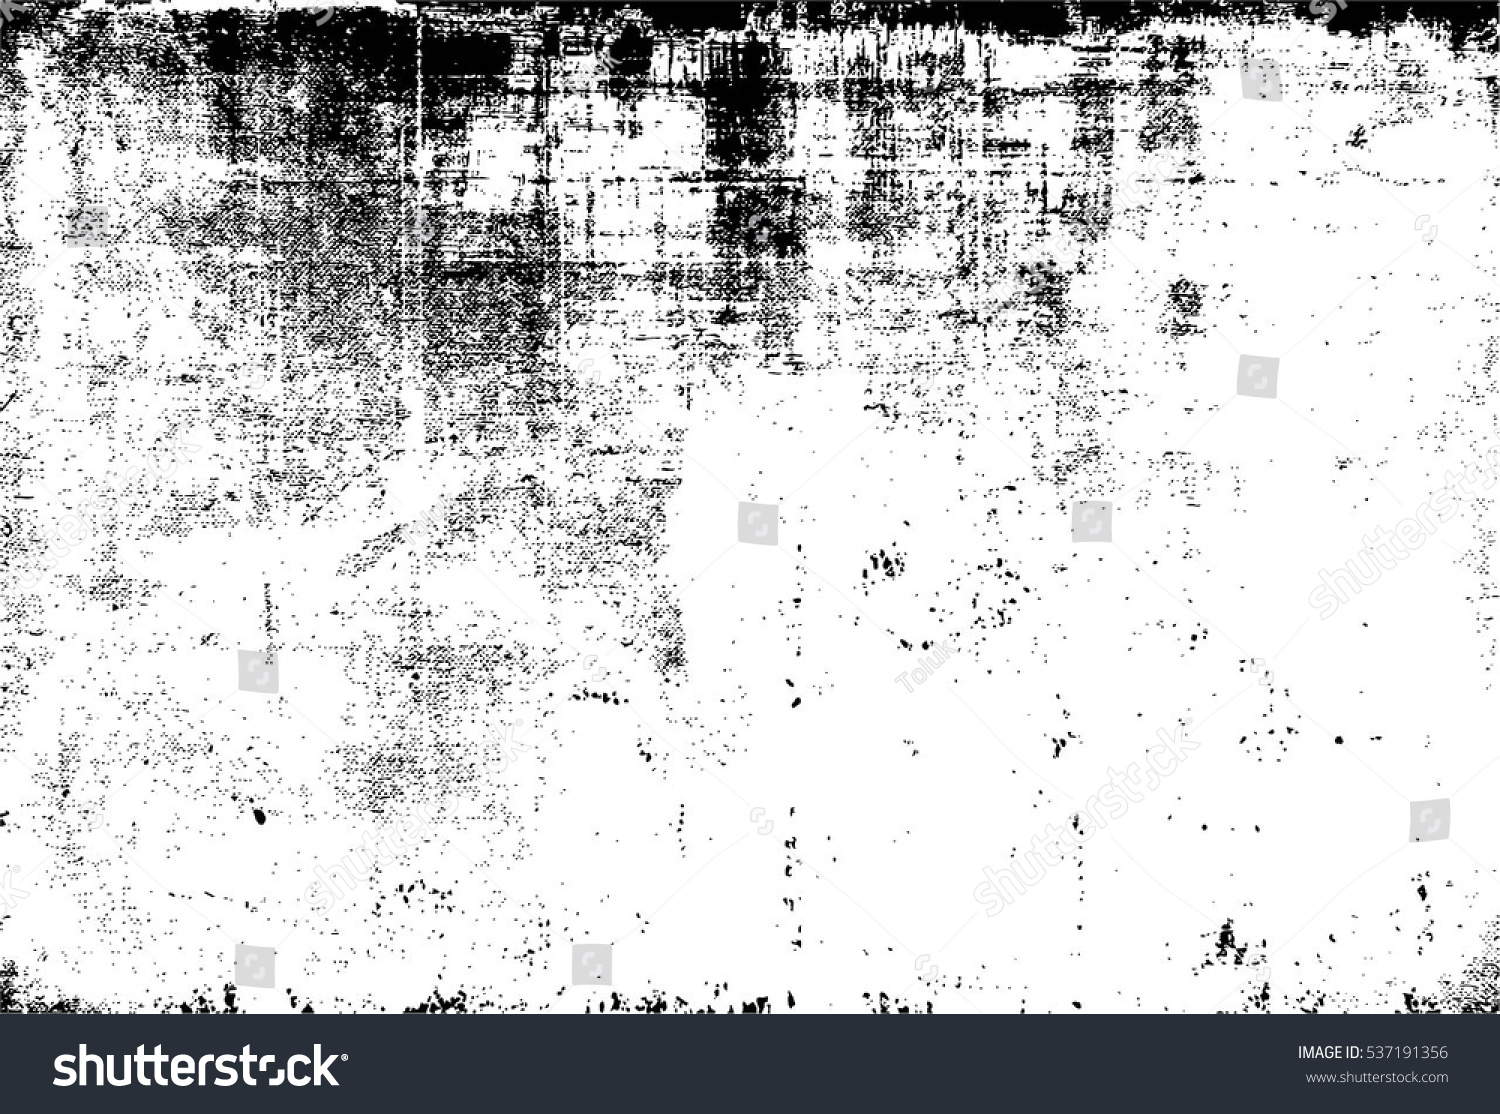 grunge to urban grunge essay It's easy to confuse grunge texture with a dirty look while designers often use the terms dirty, urban, and graffiti-like to describe grunge, these textures don't have to seem dirty.